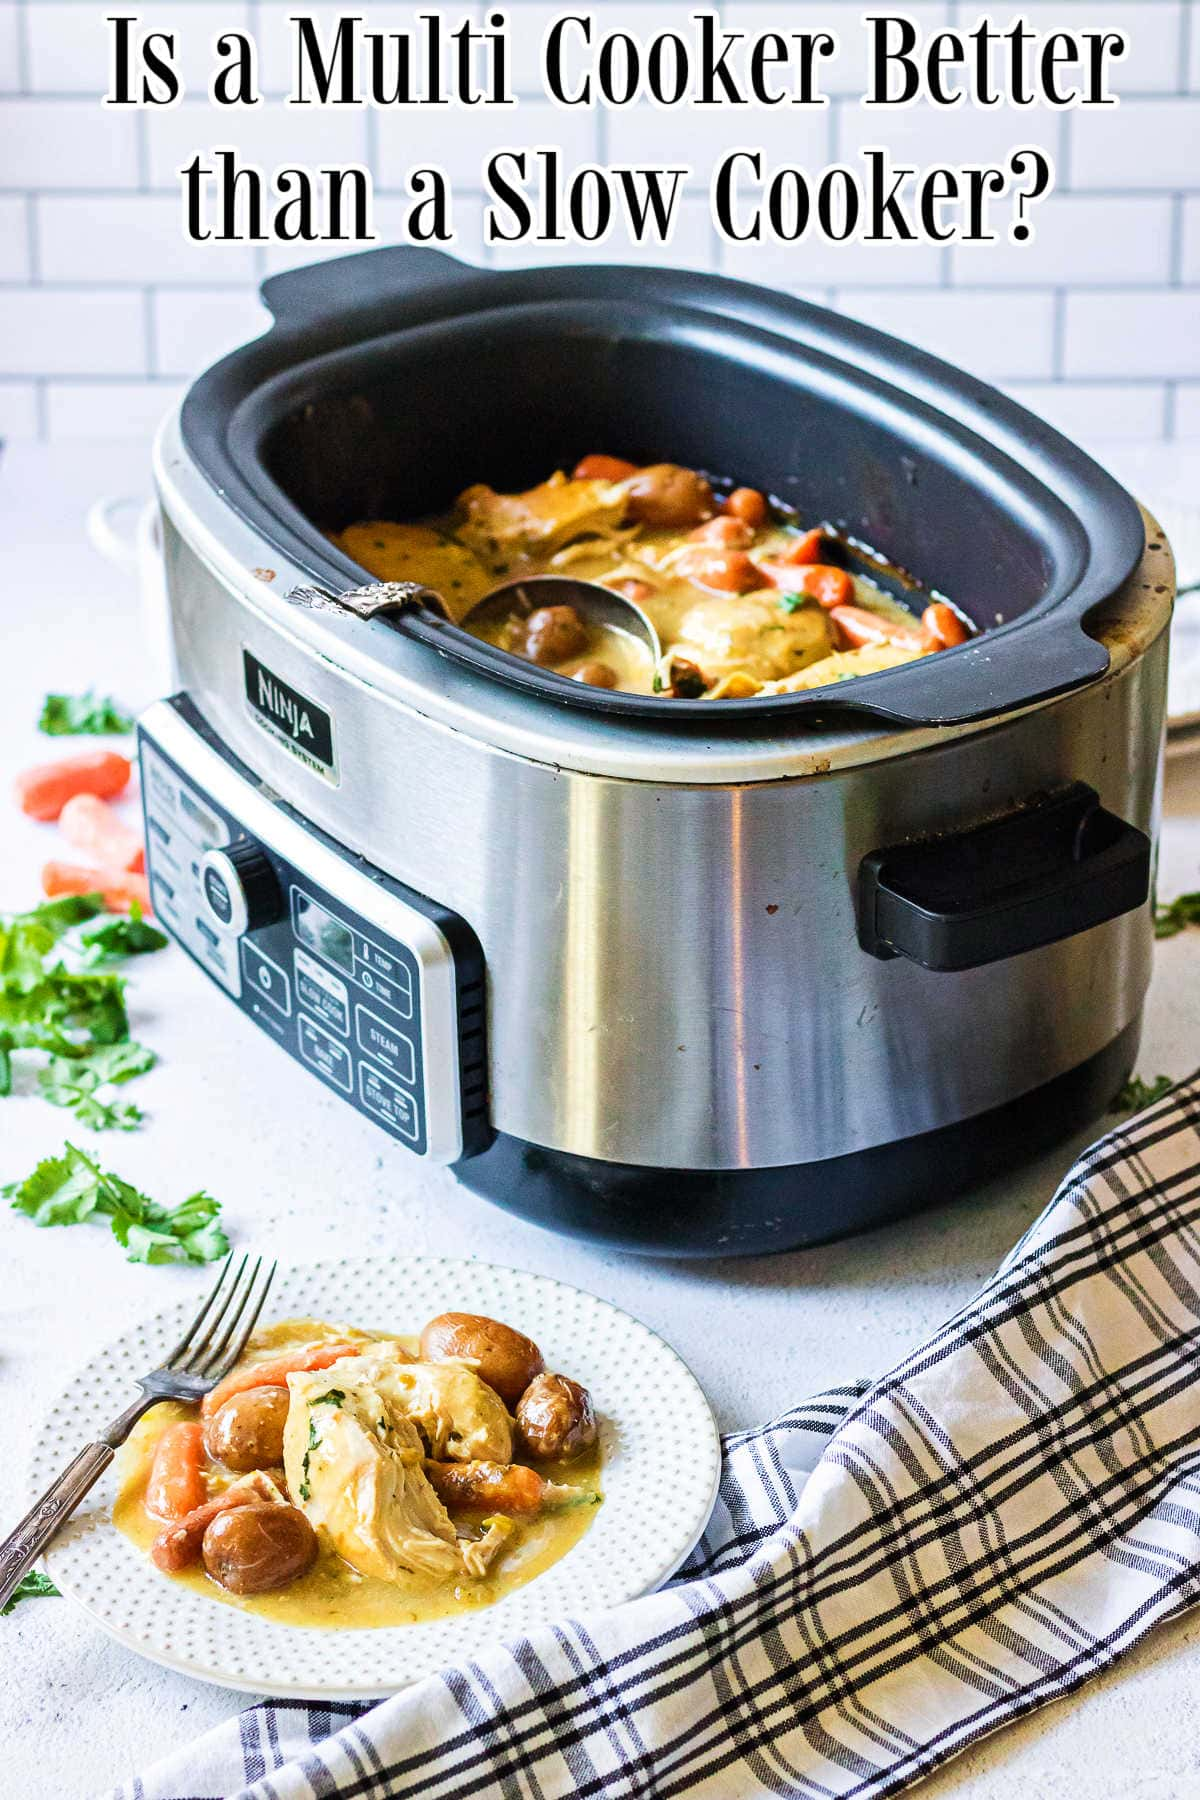 A multi-cooker filled with chicken stew.